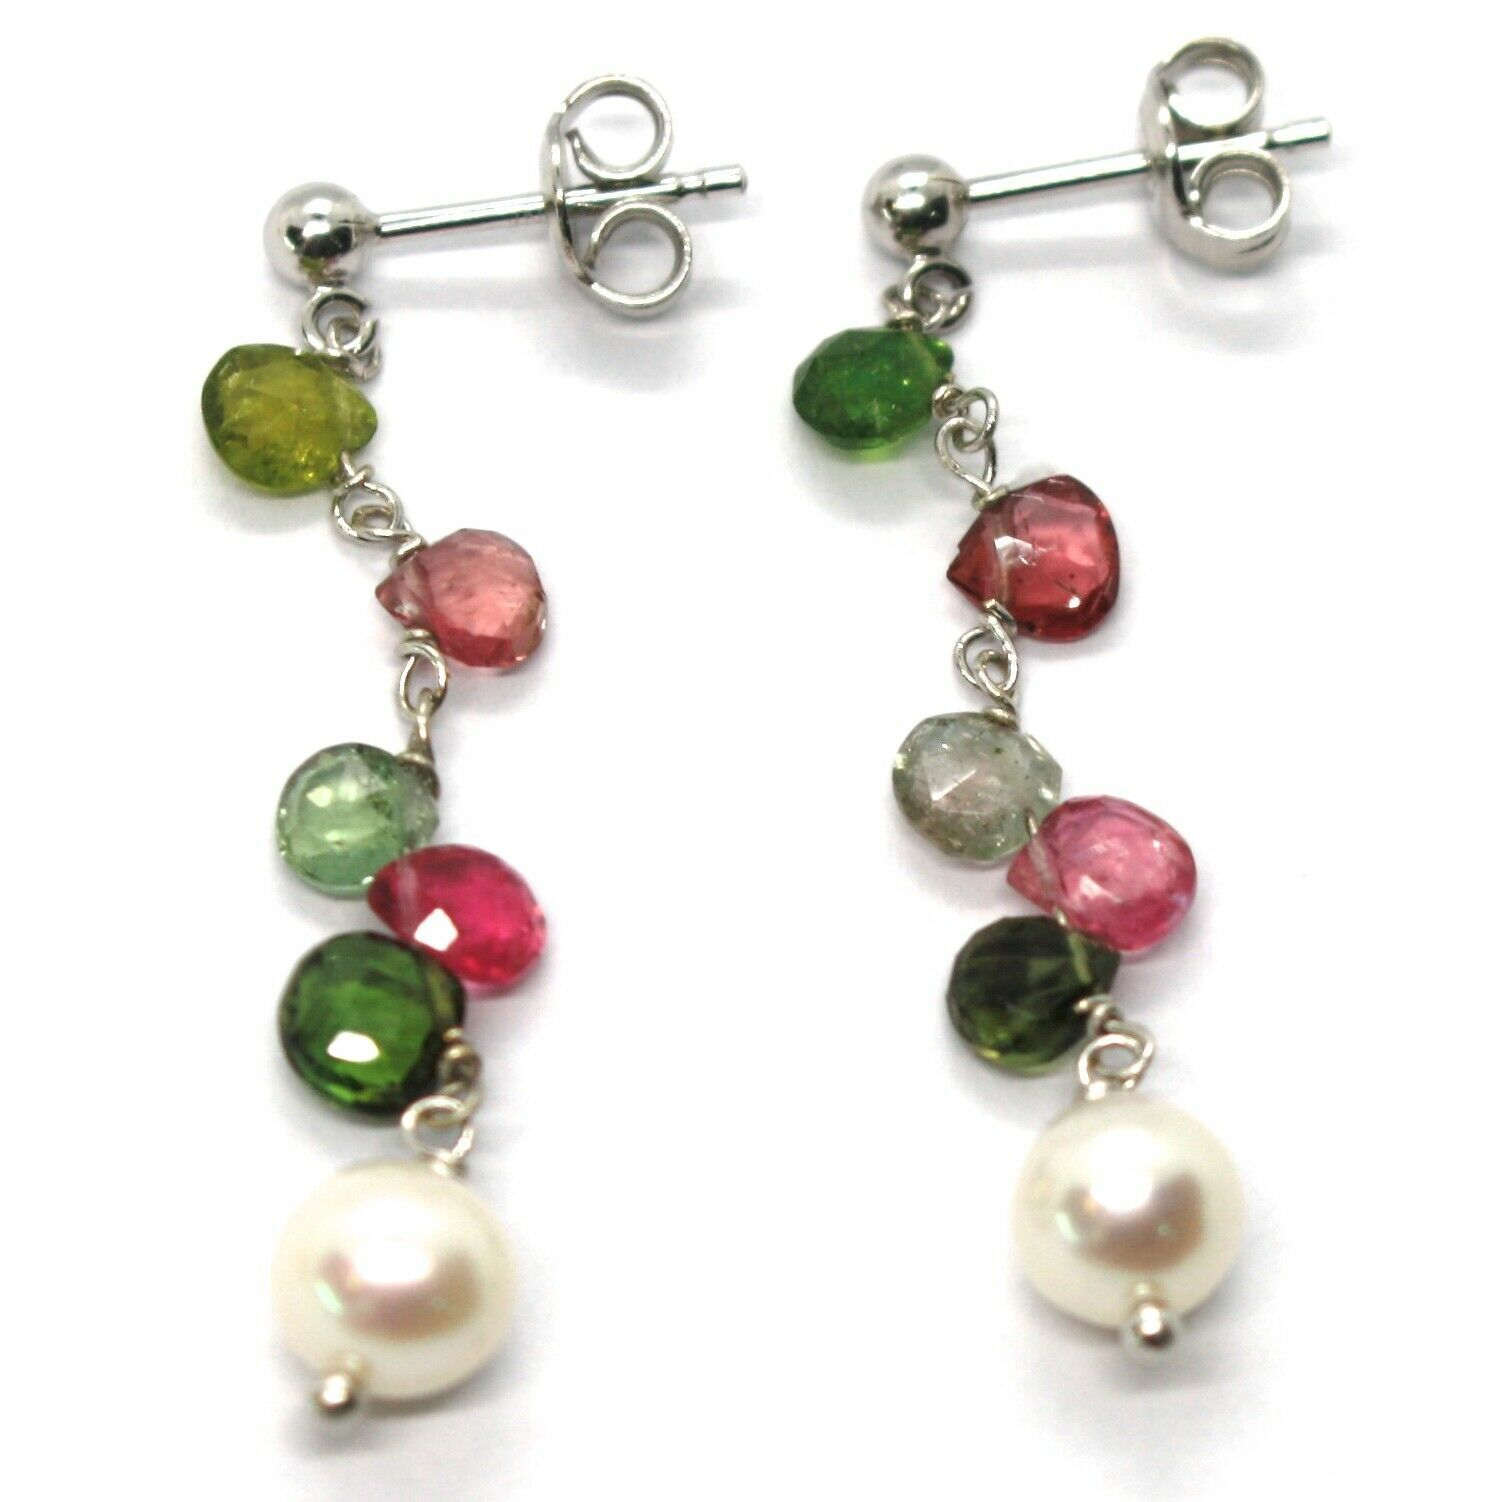 18K WHITE GOLD PENDANT EARRINGS, PEARL, GREEN AND RED DROP TOURMALINE 1.7 INCHES